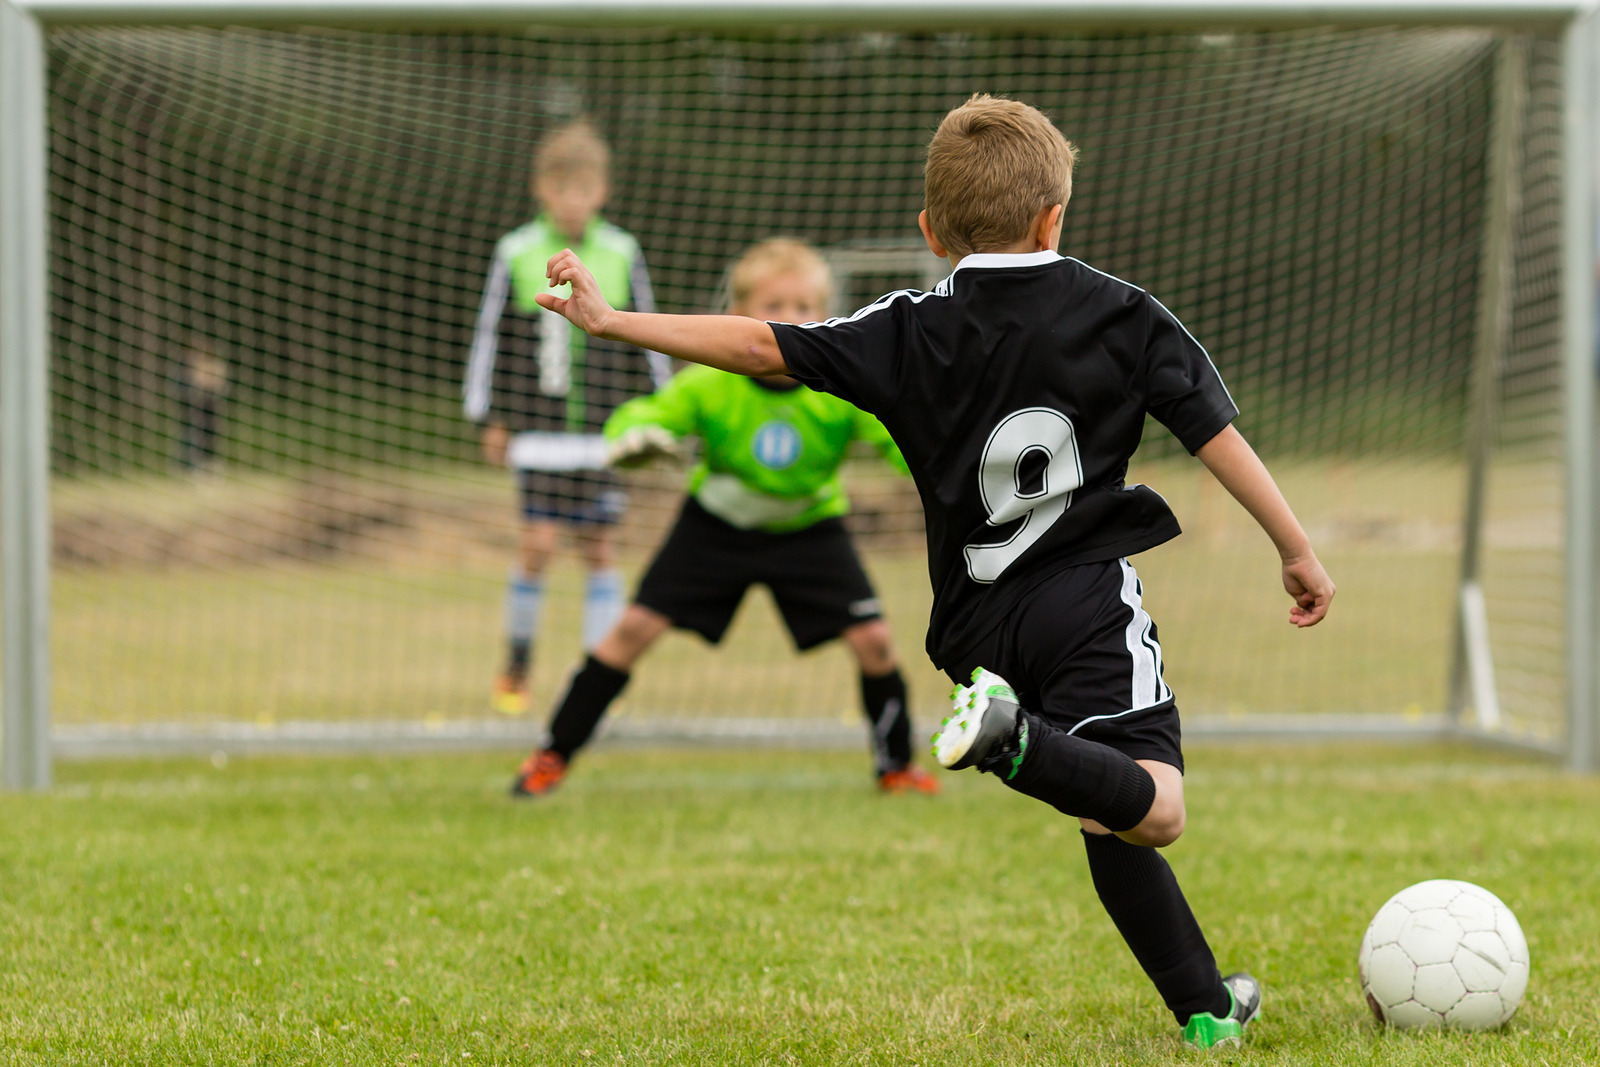 playing sports kid burned kick indications soccer penalty intense comments